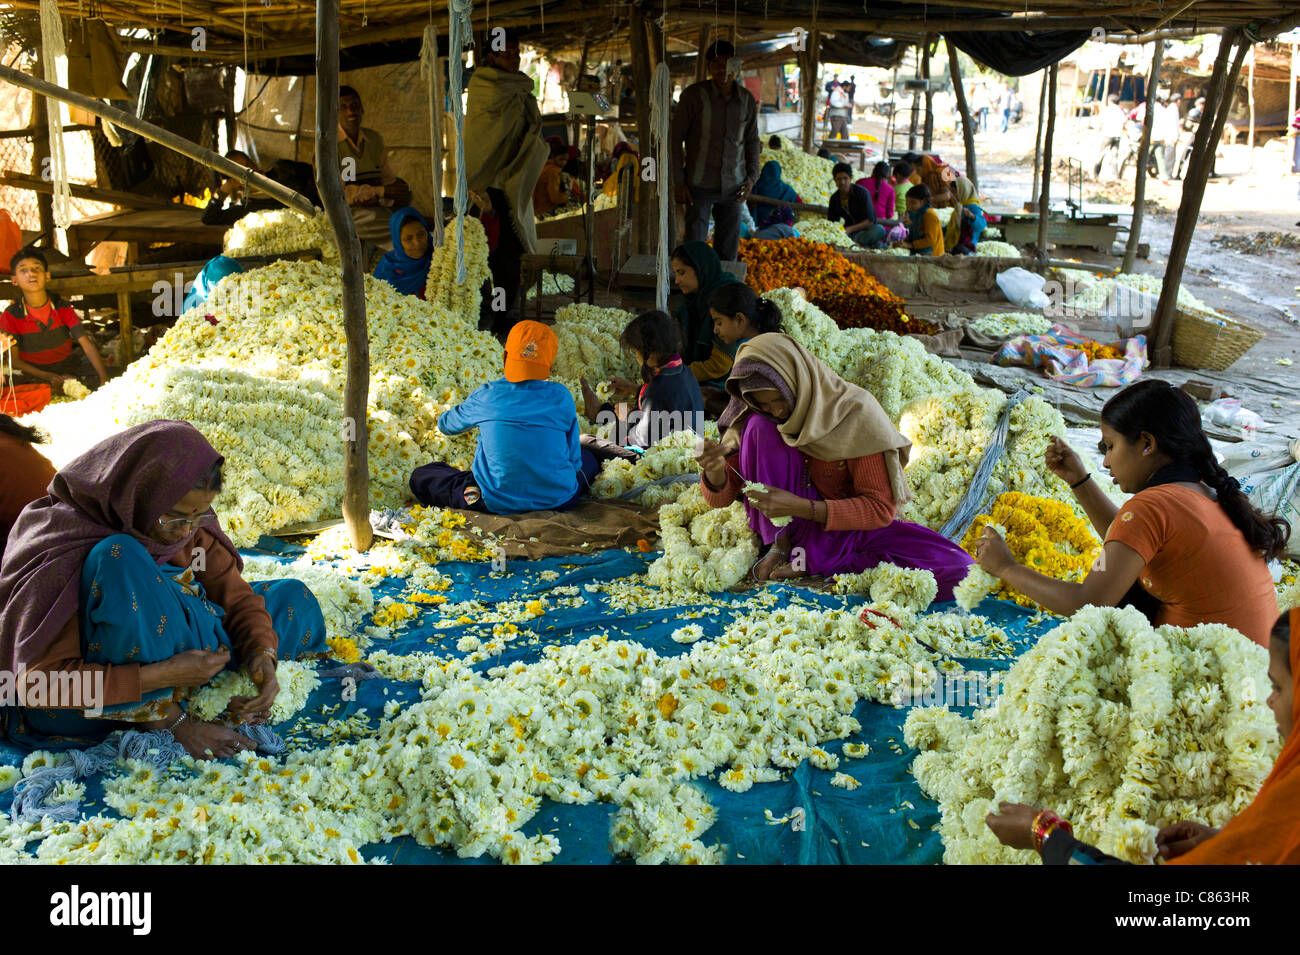 Indian women and children at work stringing garlands at Mehrauli Flower Market, New Delhi, India - Stock Image